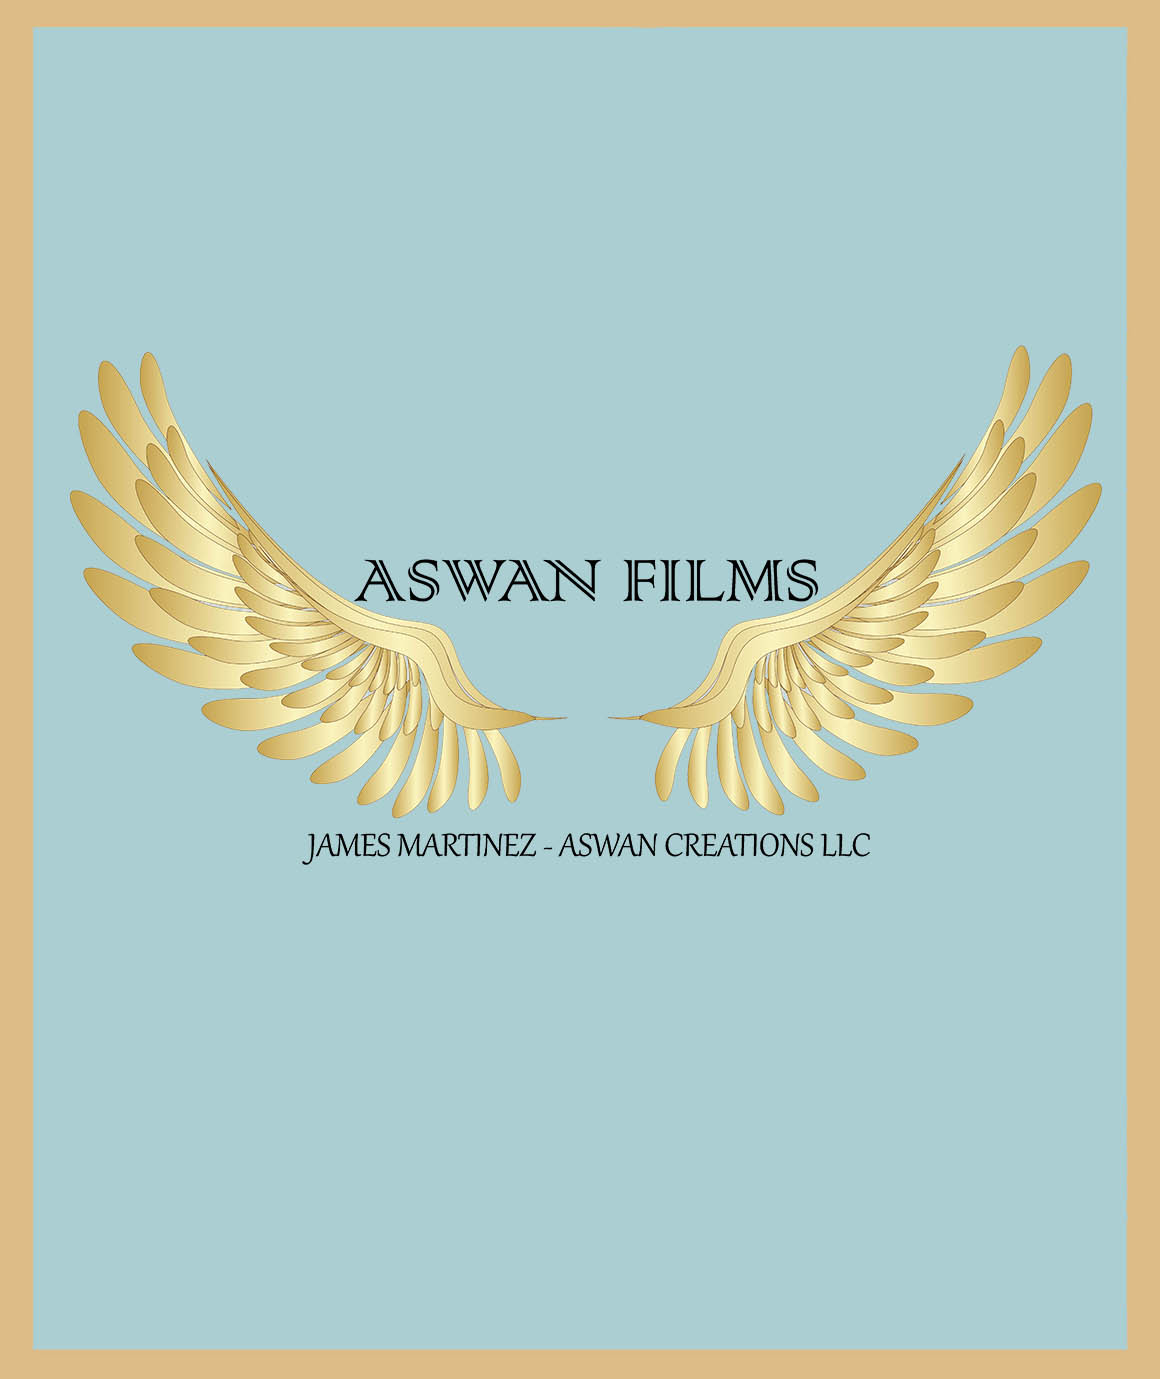 ASWAN FILMS - JAMES MARTINEZ - ASWAN CREATIONS LLC